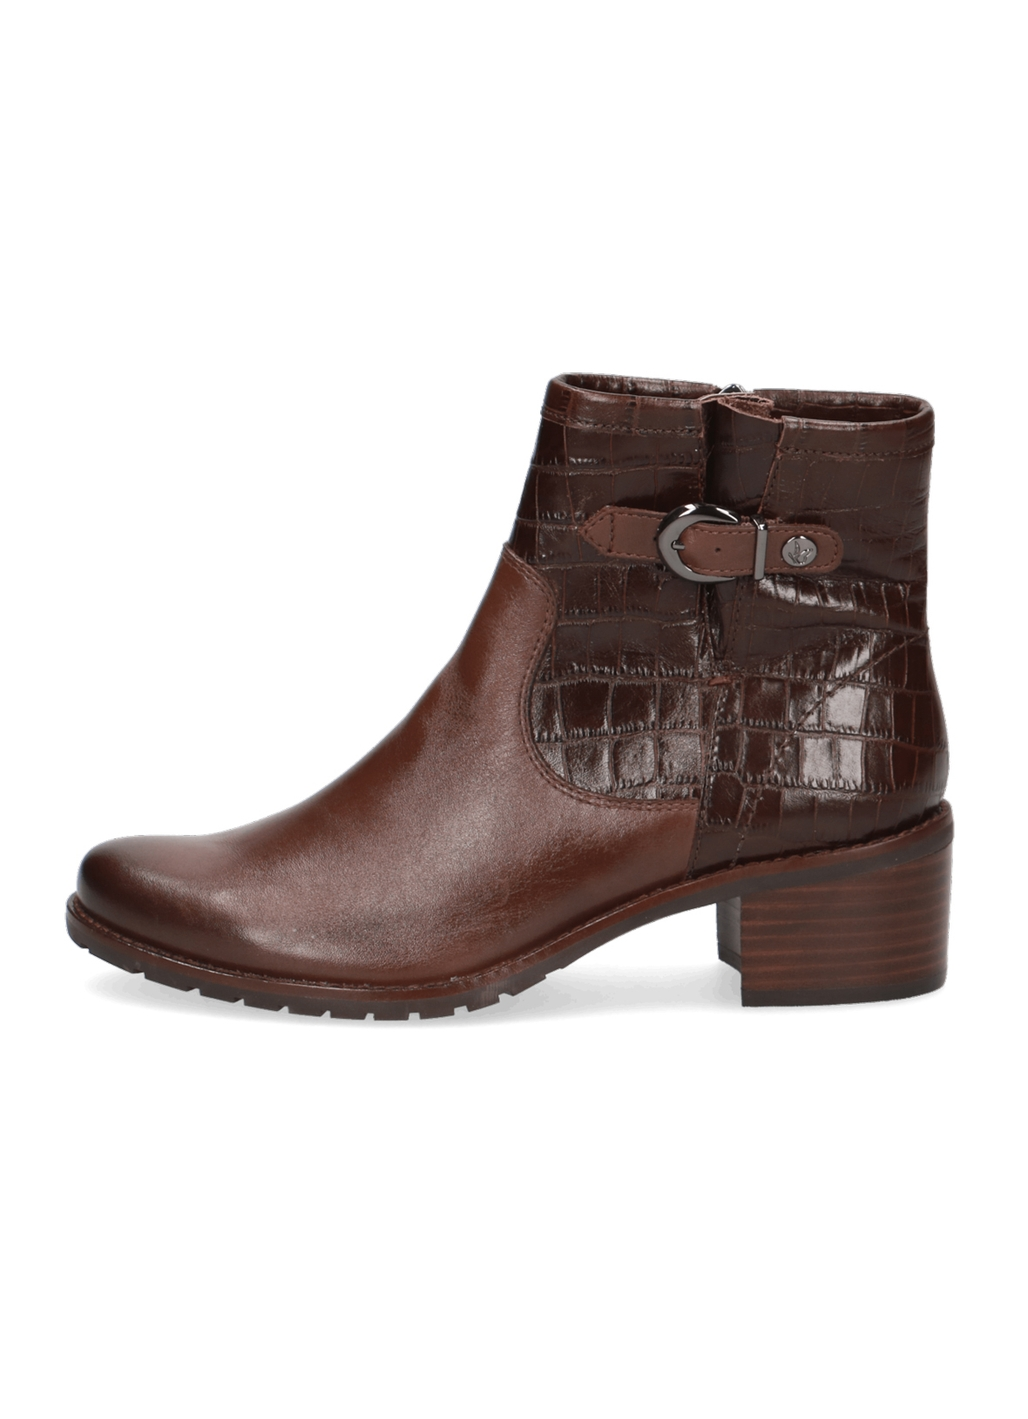 Caprice Daniella Leather Ankle Boots in Dark Brown